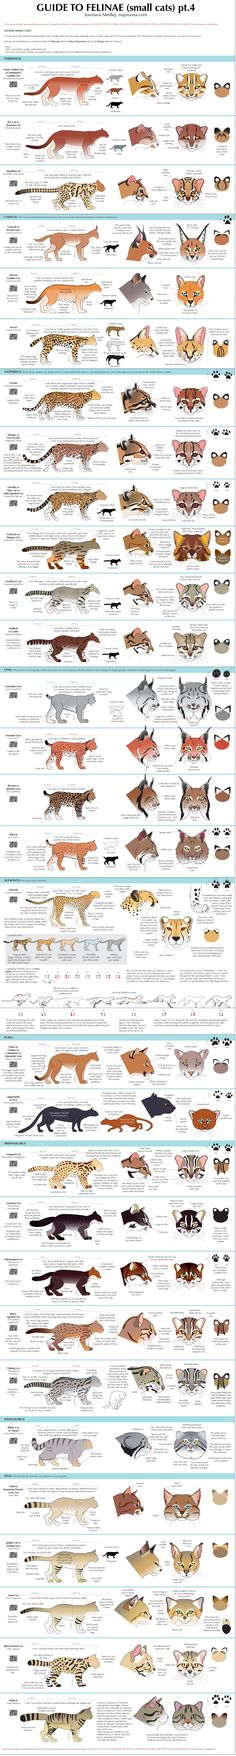 Guide to Little Cats by Majnouna.deviantart.com on @deviantART